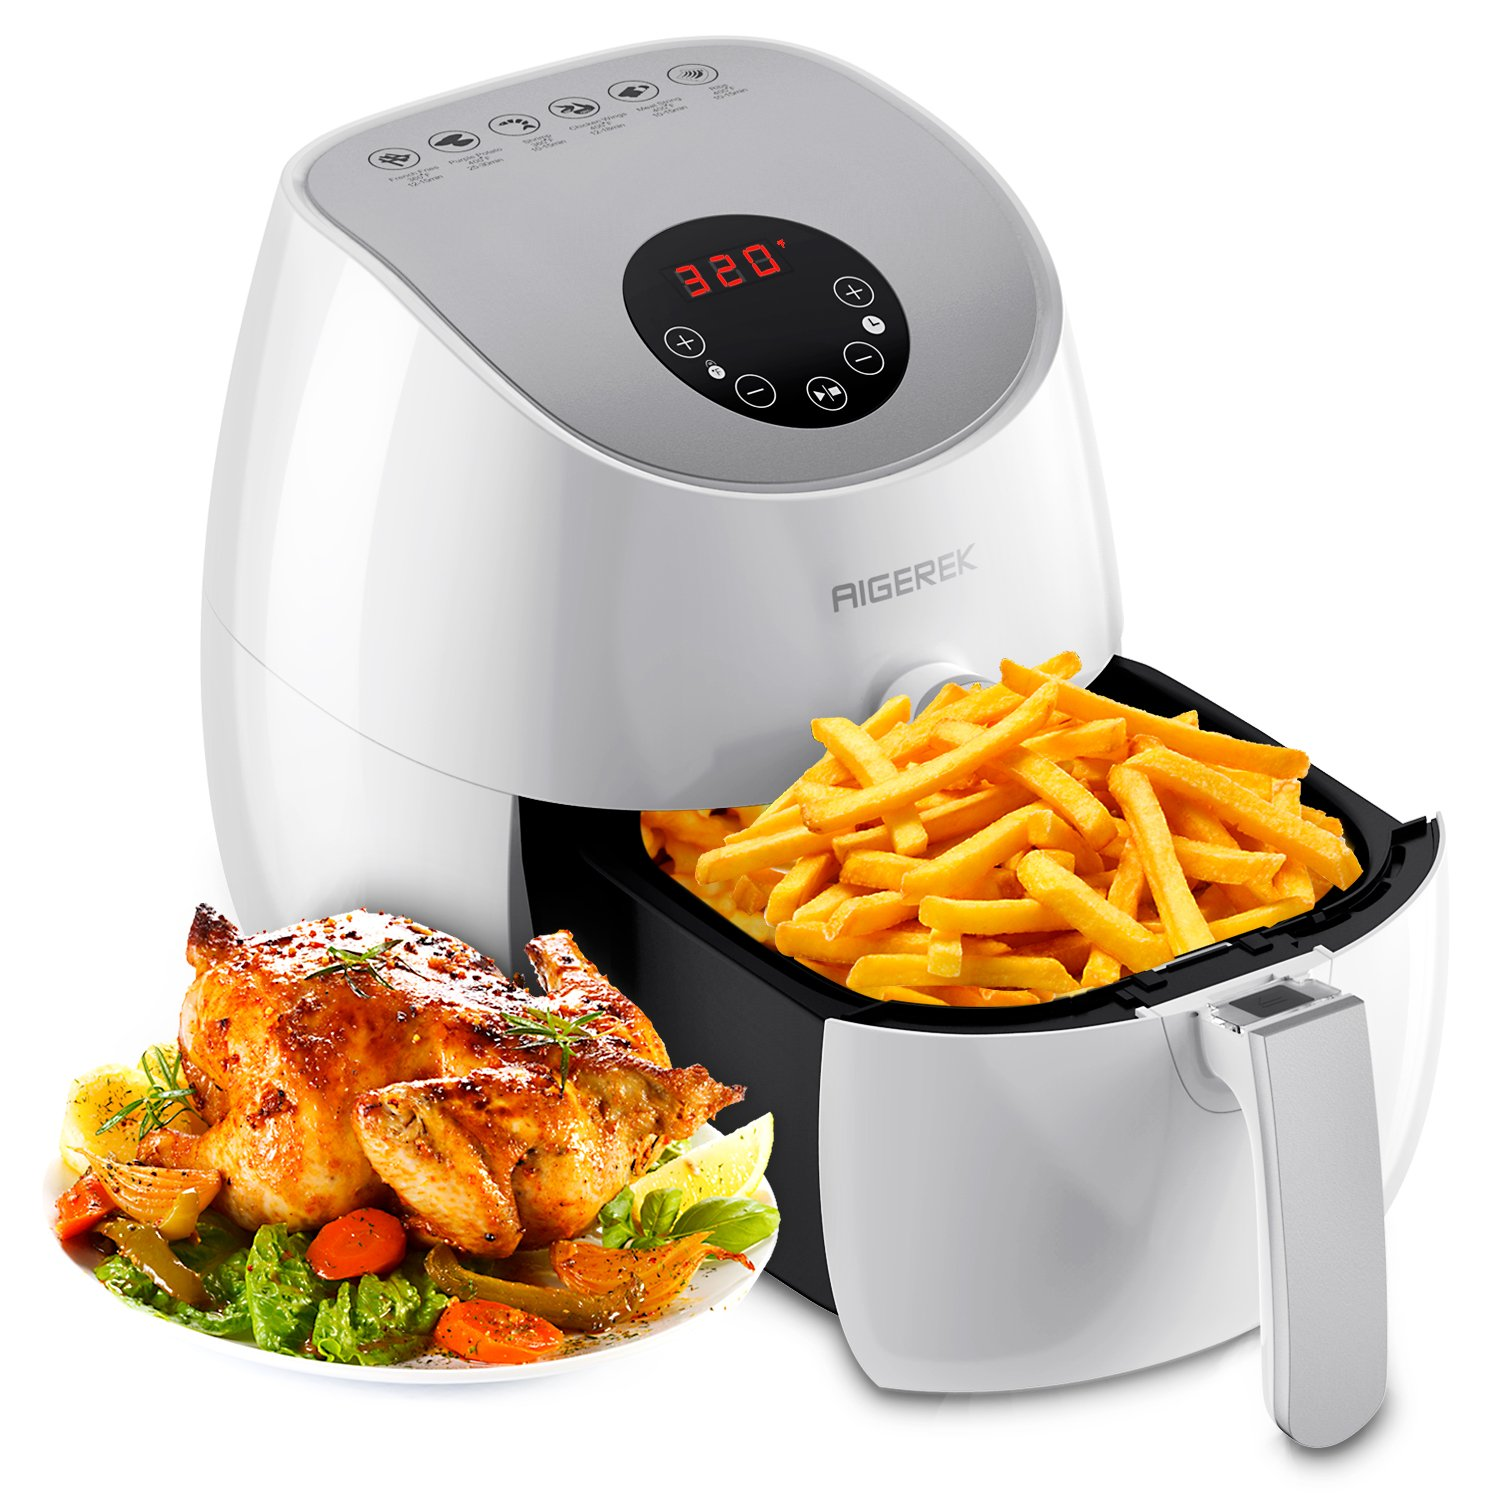 Aigerek Air Fryer - 3.2L, 1350W - Comes with Recipes CookBook - Easy-to-clean - Dishwasher Safe - Auto Shut off & Timer - Touch Screen Control